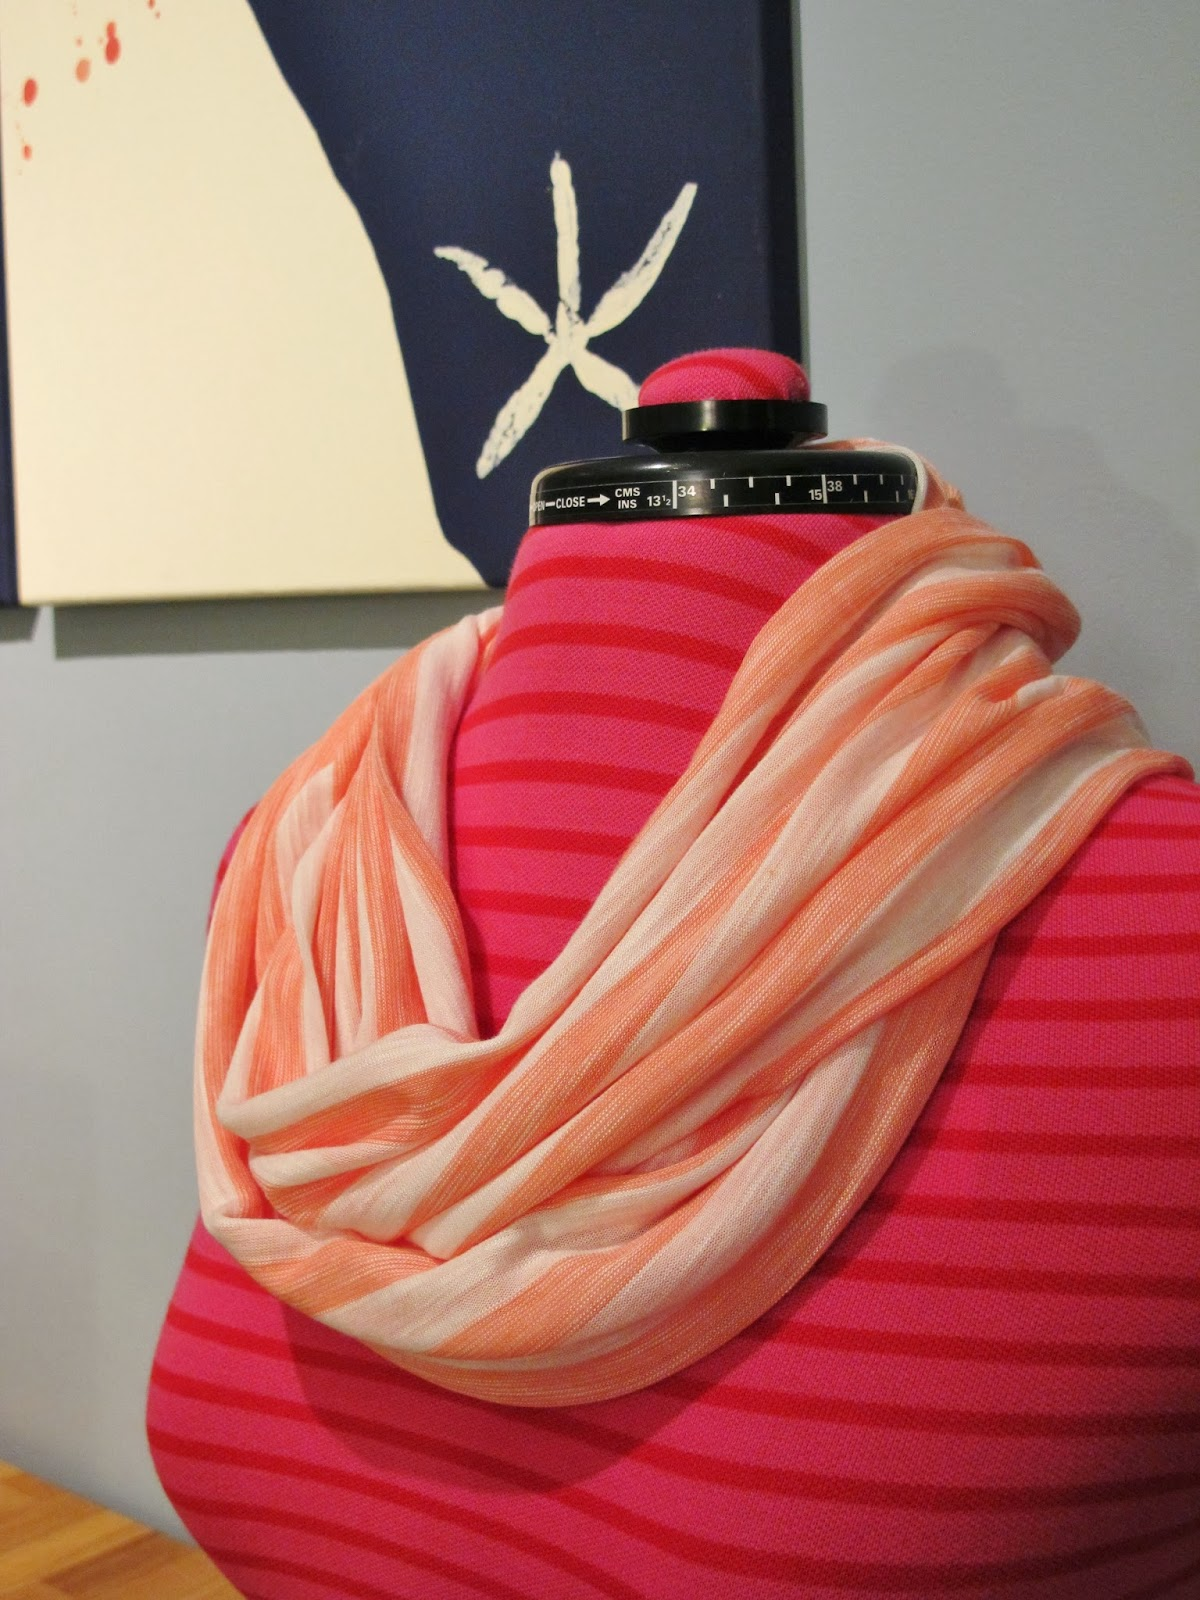 How to Make an Infinity Scarf | bonnieprojects.blogspot.com